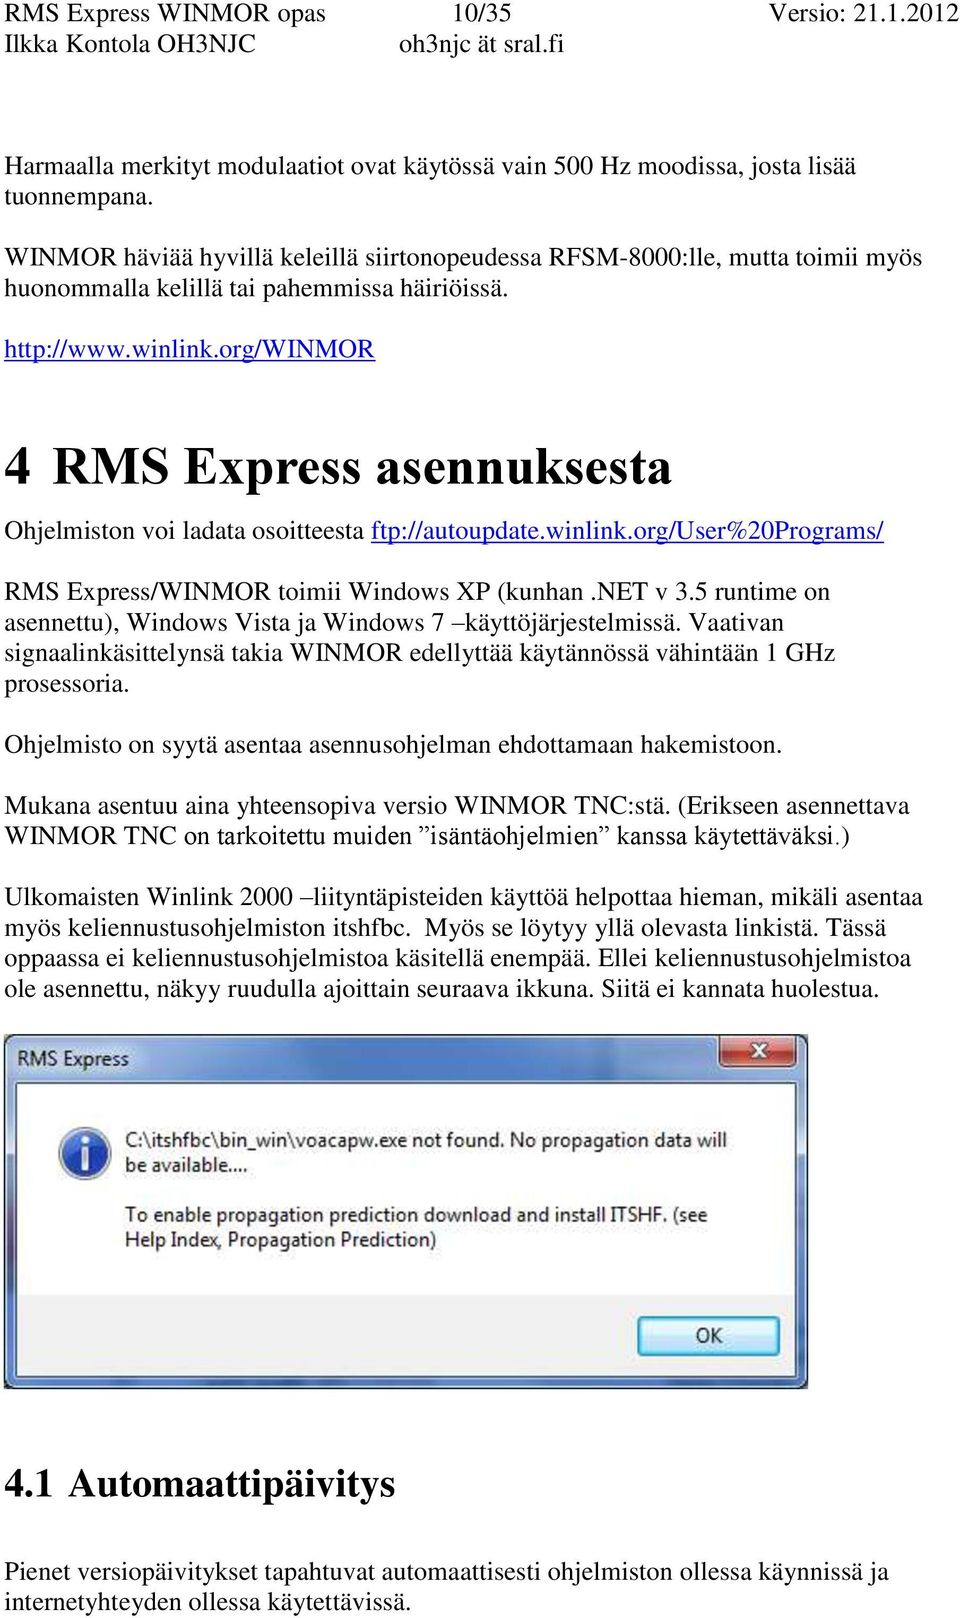 org/winmor 4 RMS Express asennuksesta Ohjelmiston voi ladata osoitteesta ftp://autoupdate.winlink.org/user%20programs/ RMS Express/WINMOR toimii Windows XP (kunhan.net v 3.